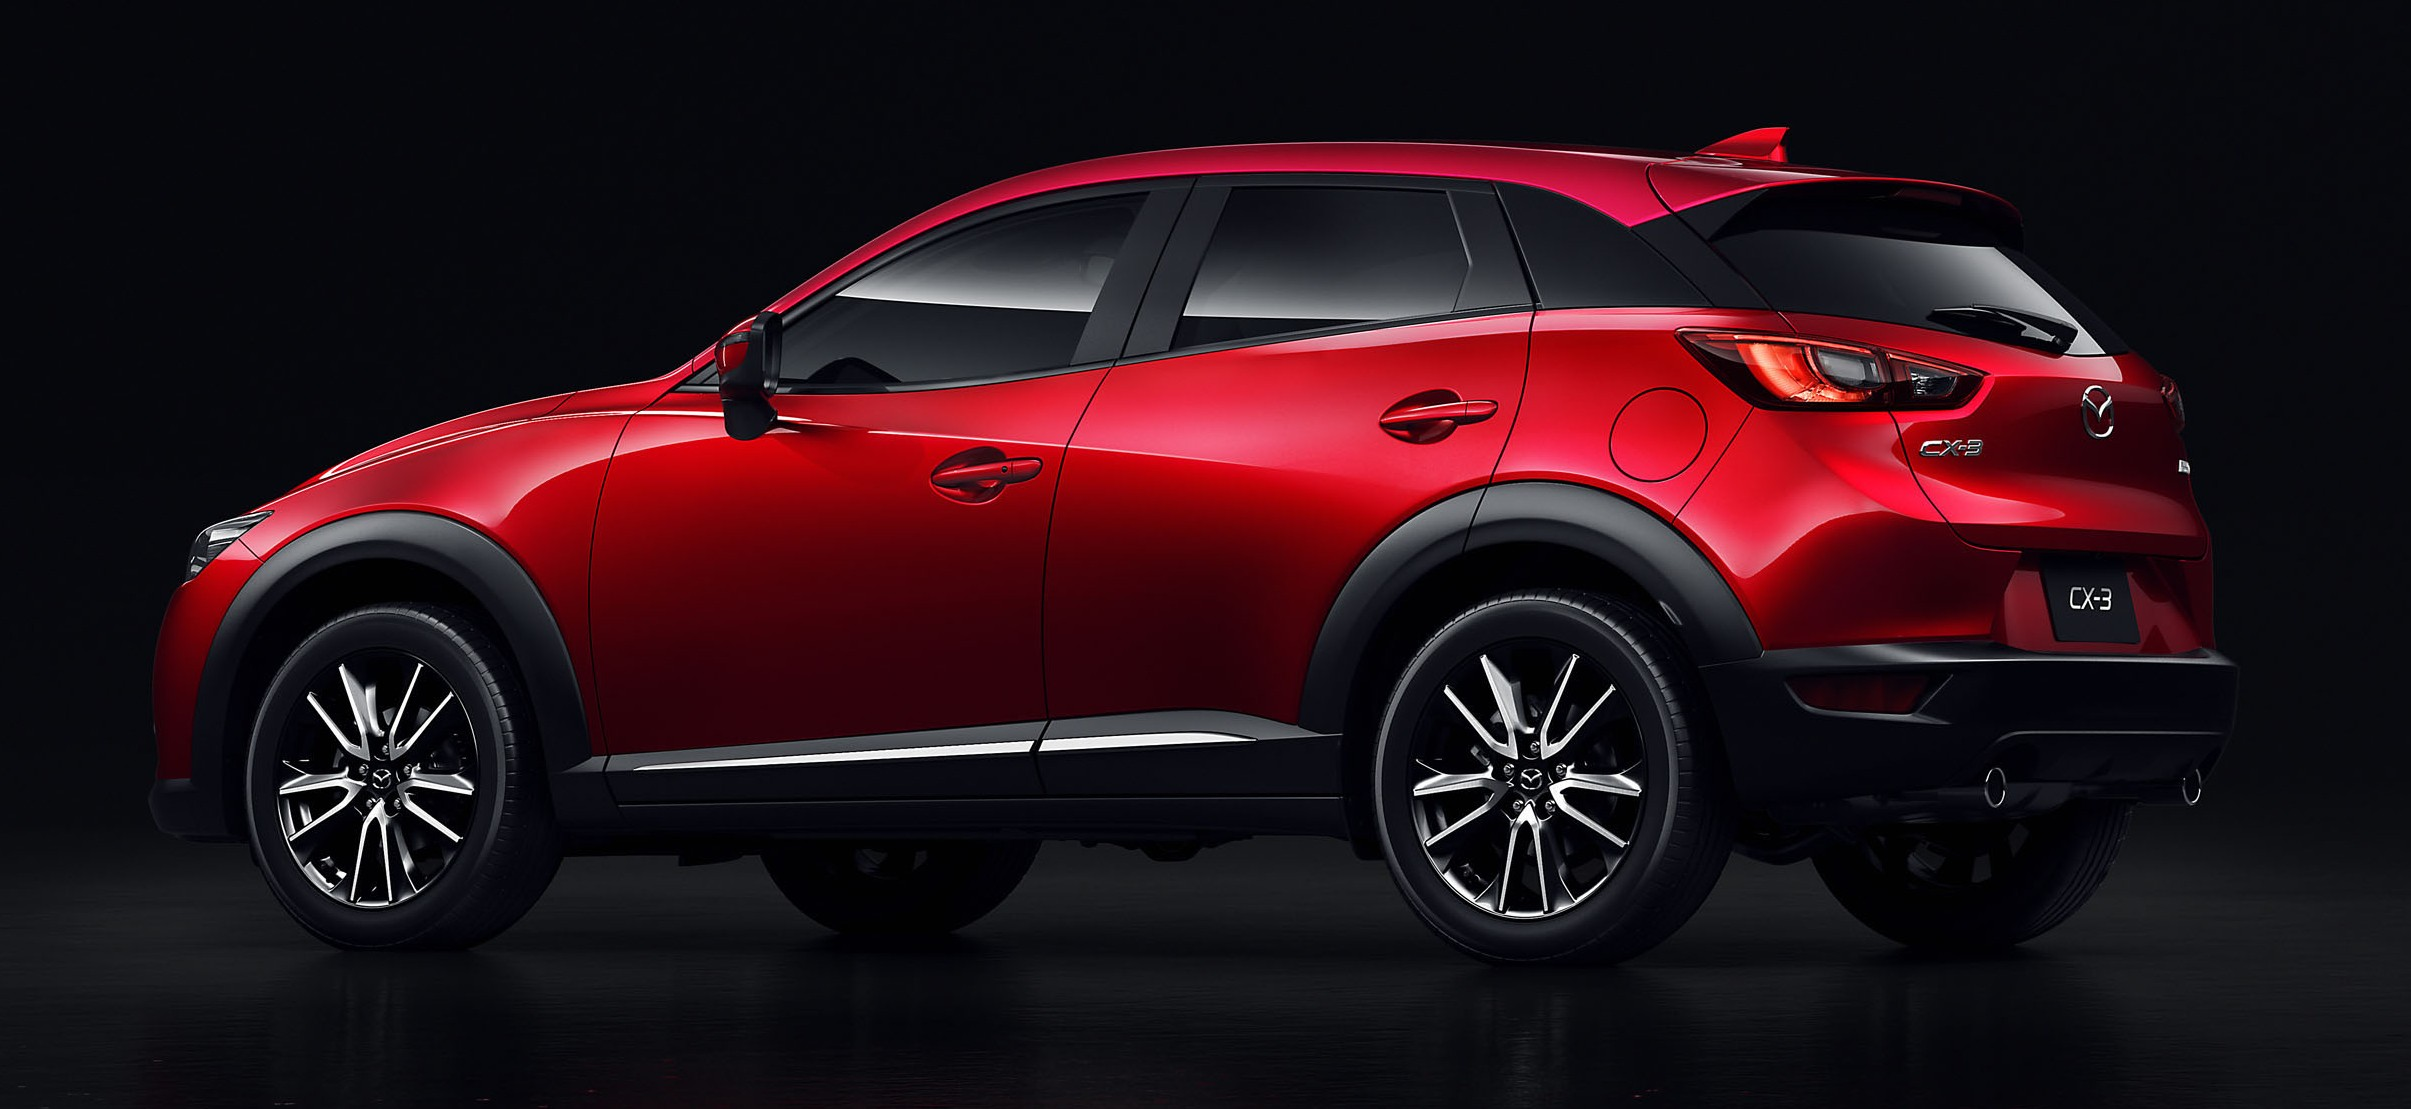 mazda cx 3 new b segment suv officially unveiled image 289194. Black Bedroom Furniture Sets. Home Design Ideas